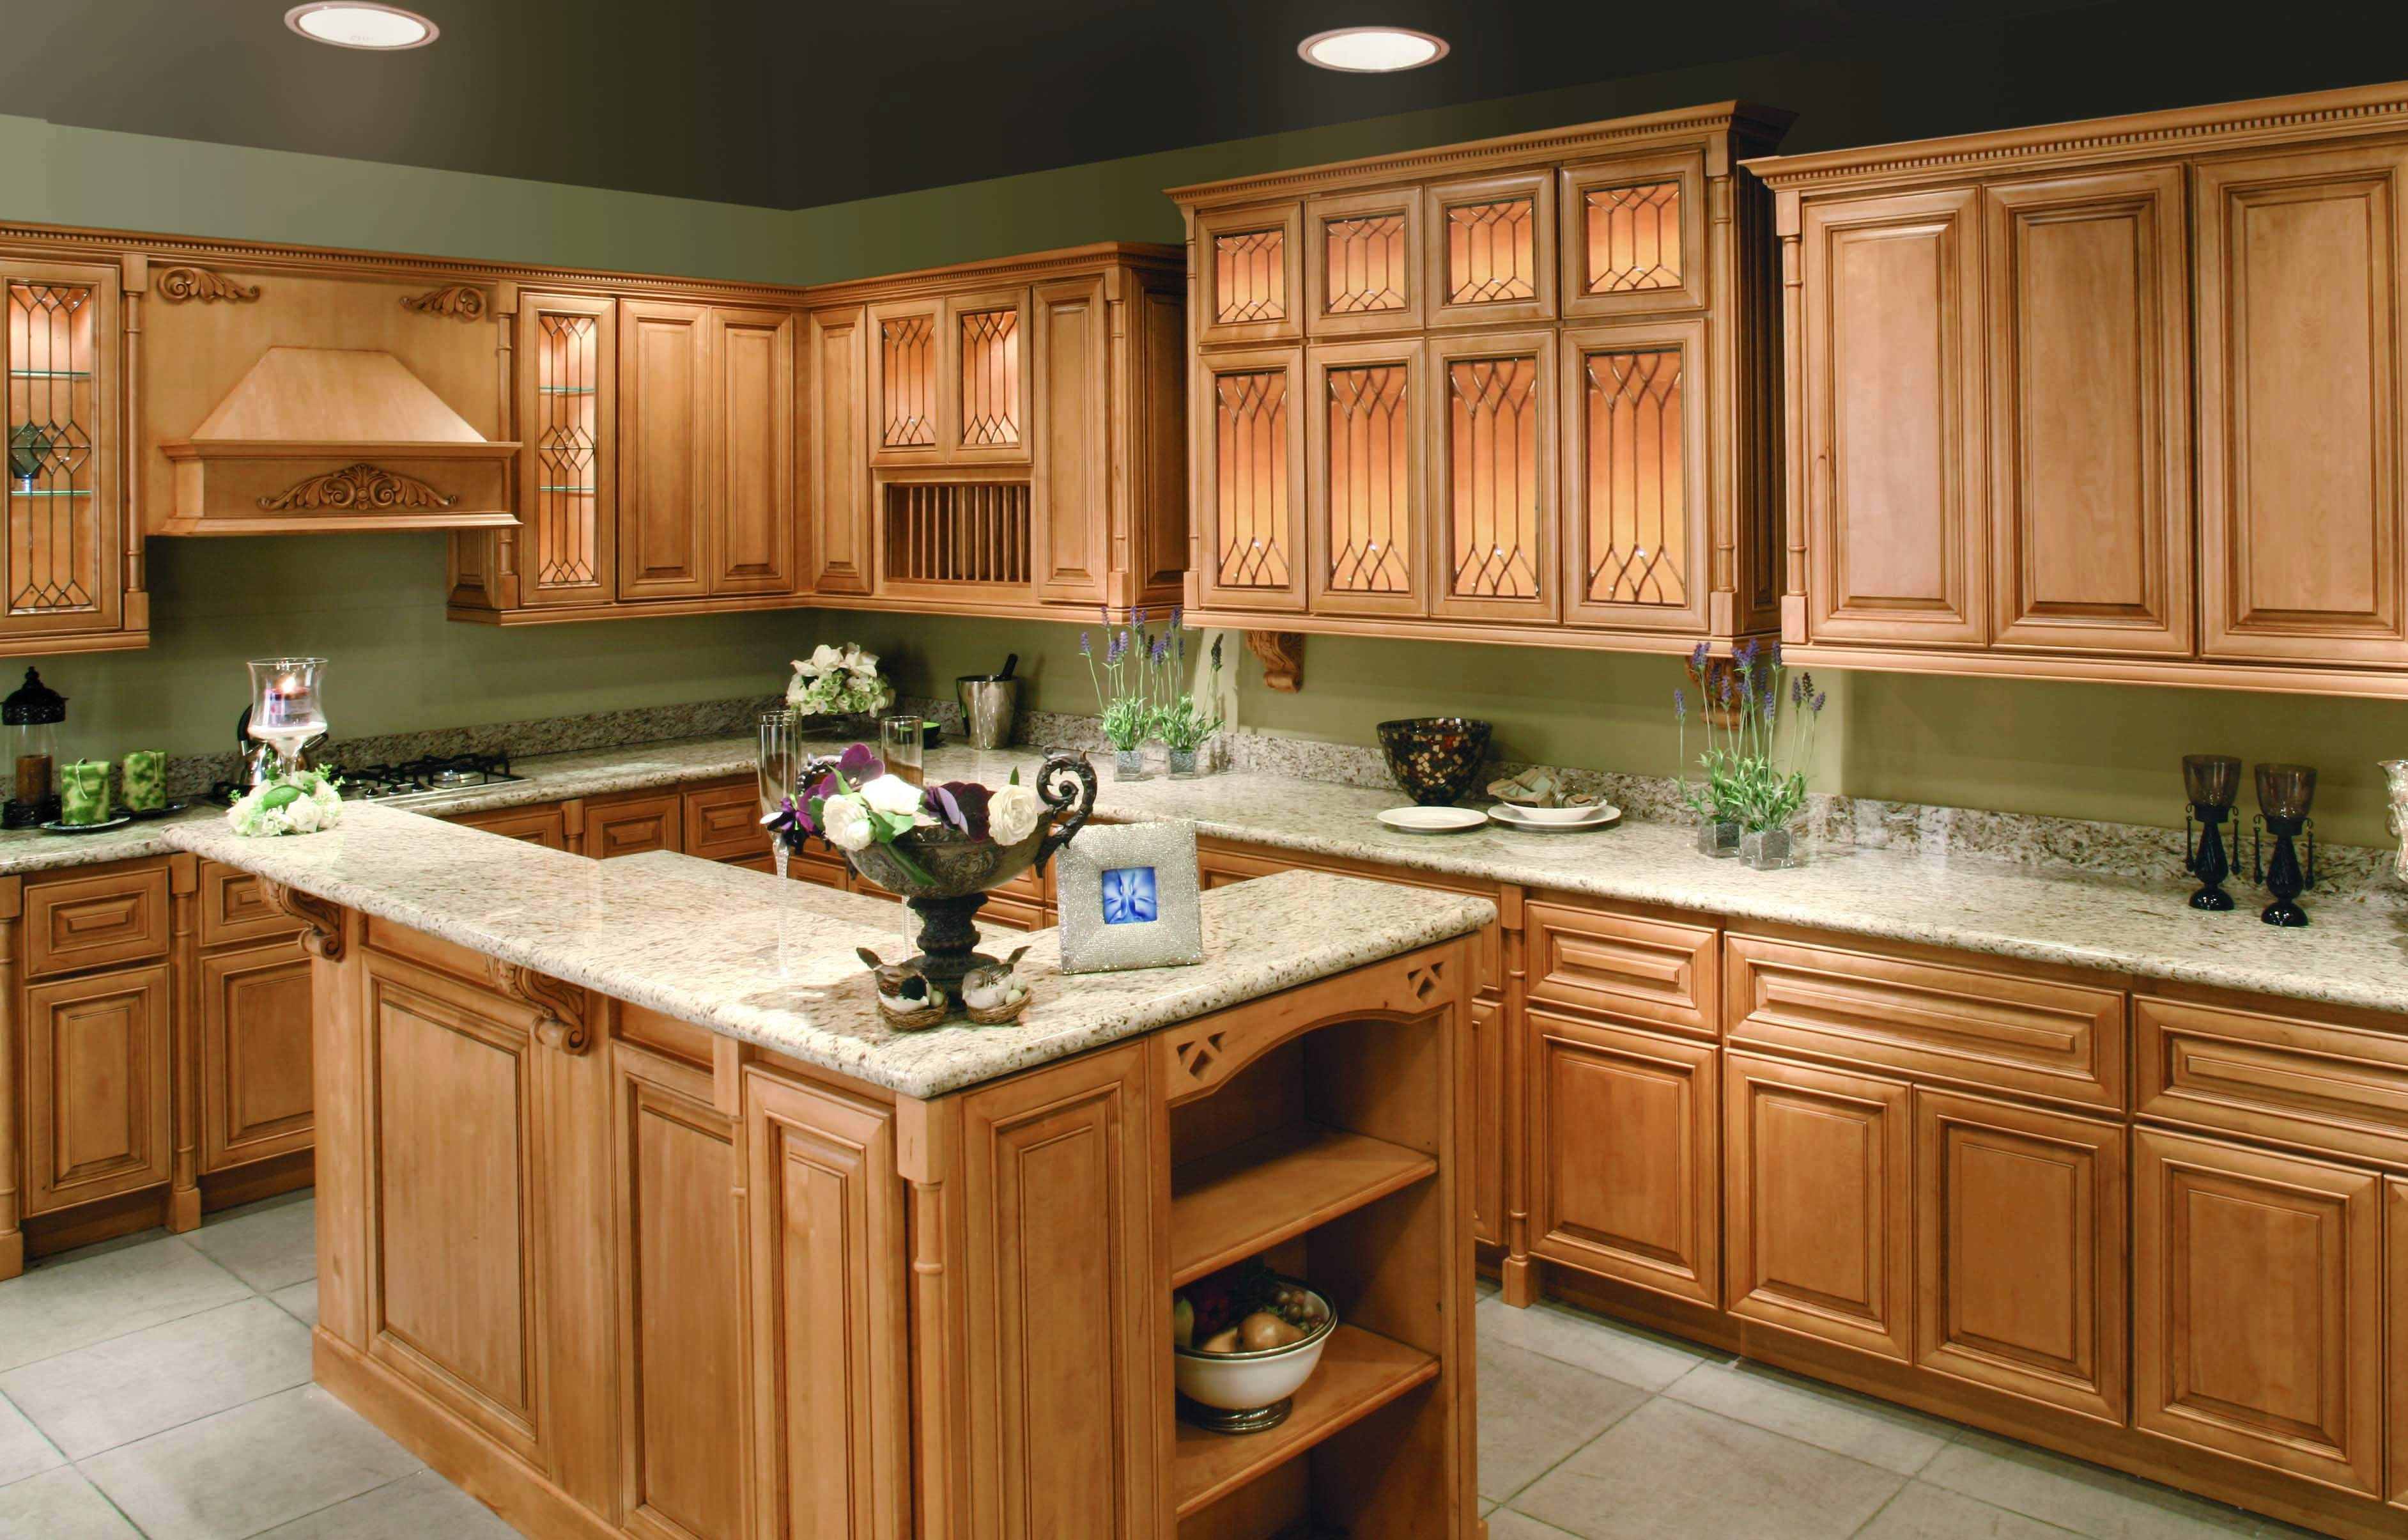 Kitchens With Maple Cabinets And Green Walls